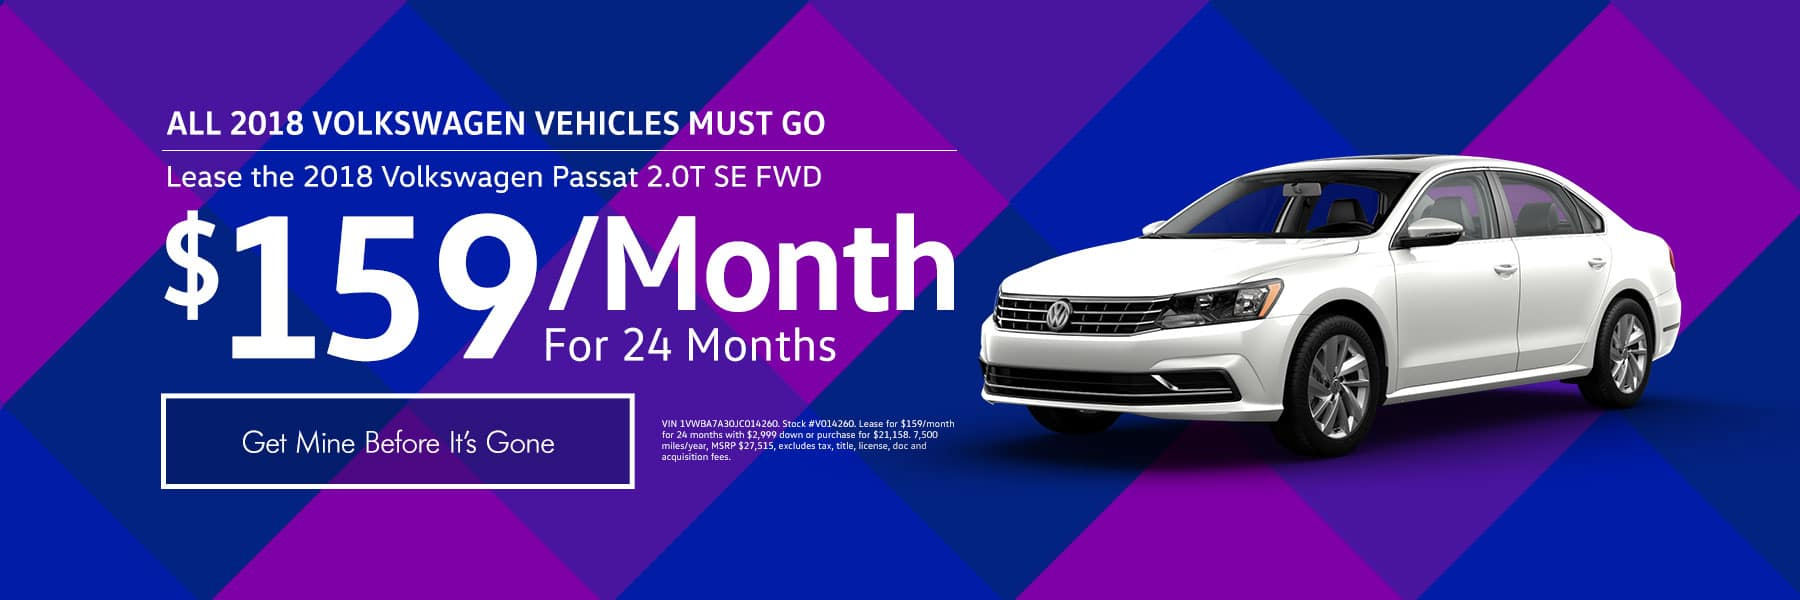 Lease the 2018 Volkswagen Passat 2.0T SE FWD for $159/month for 24 months - Get mine before its gone